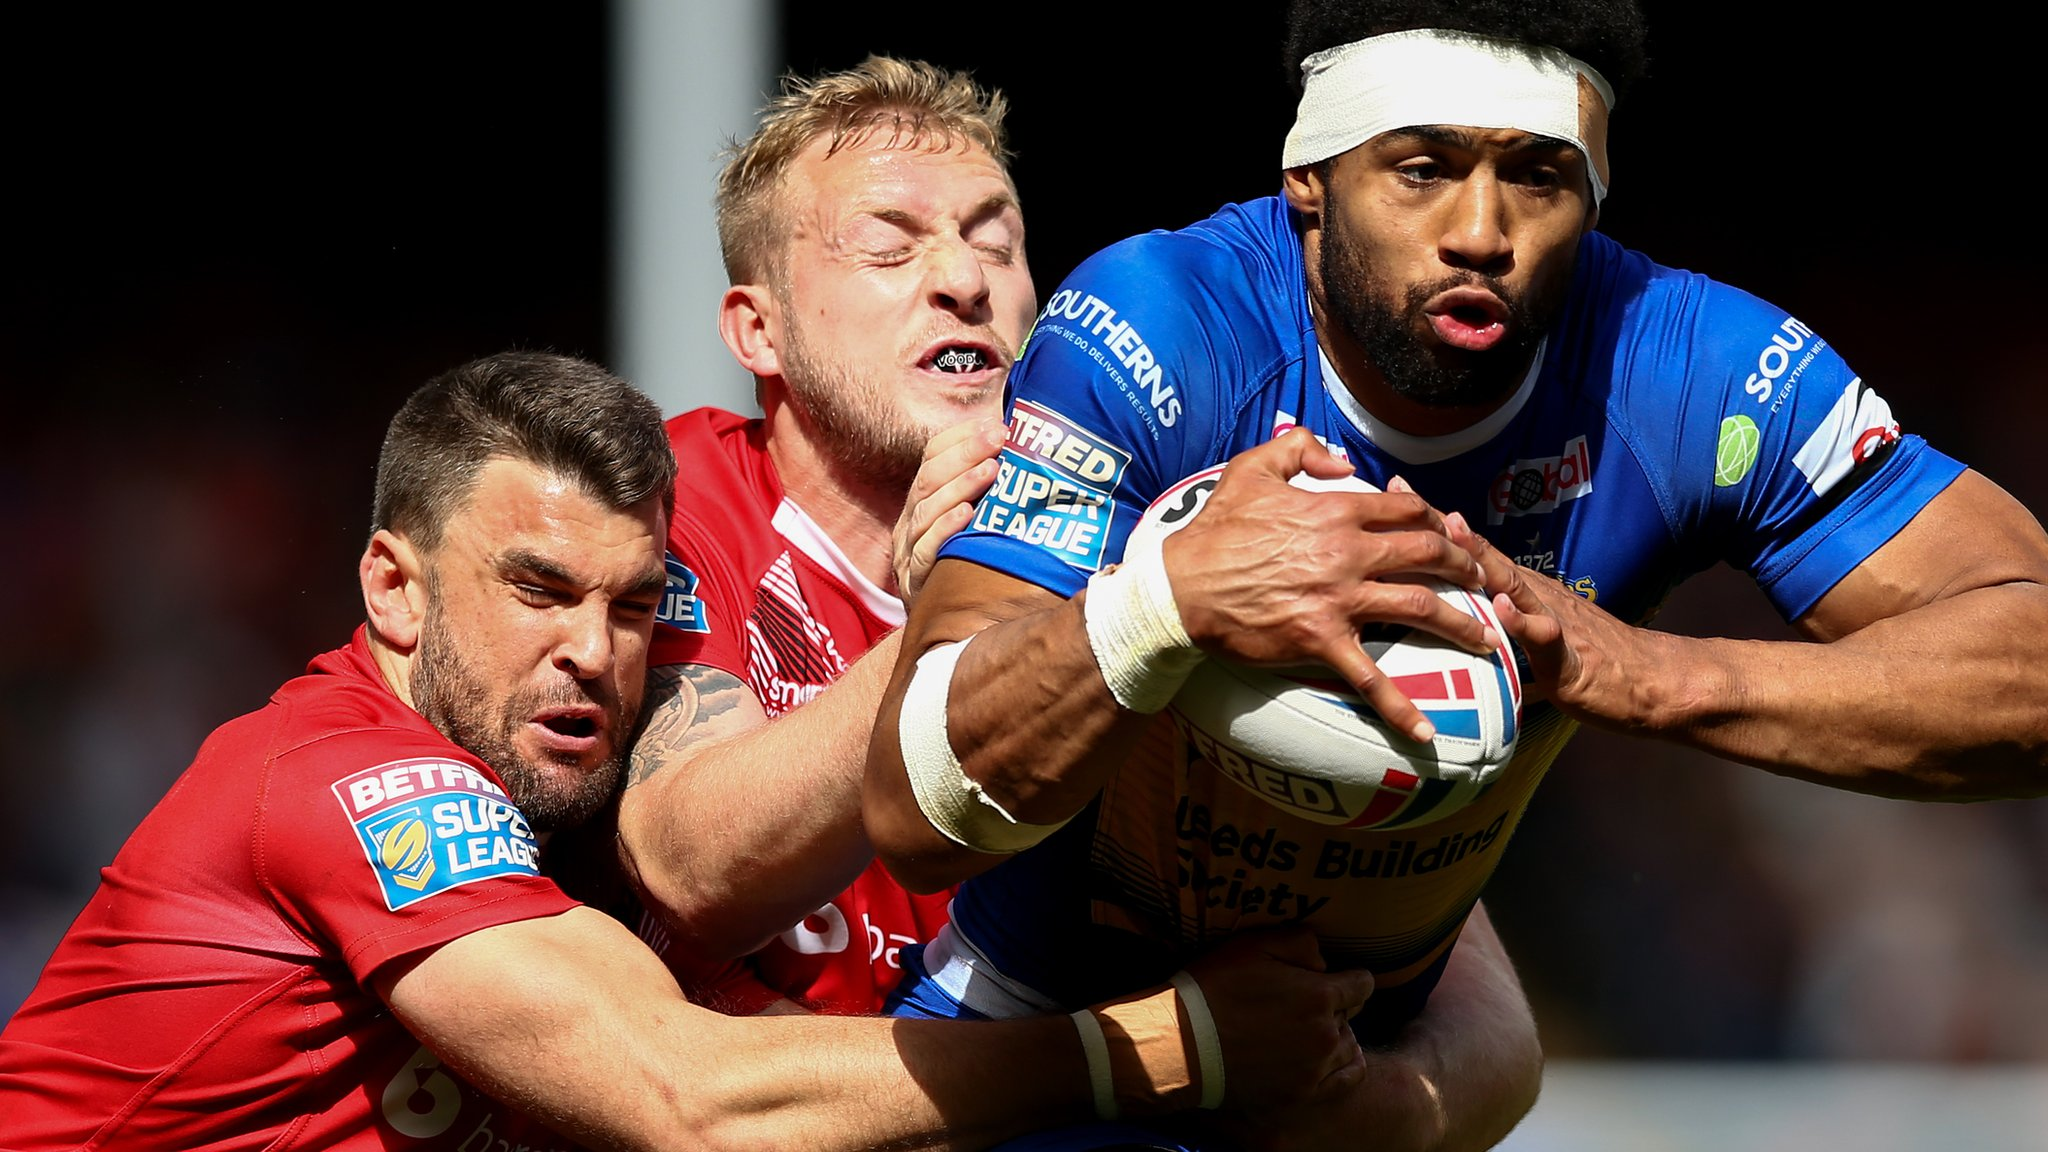 Super League: Leeds Rhinos 24-22 London Broncos